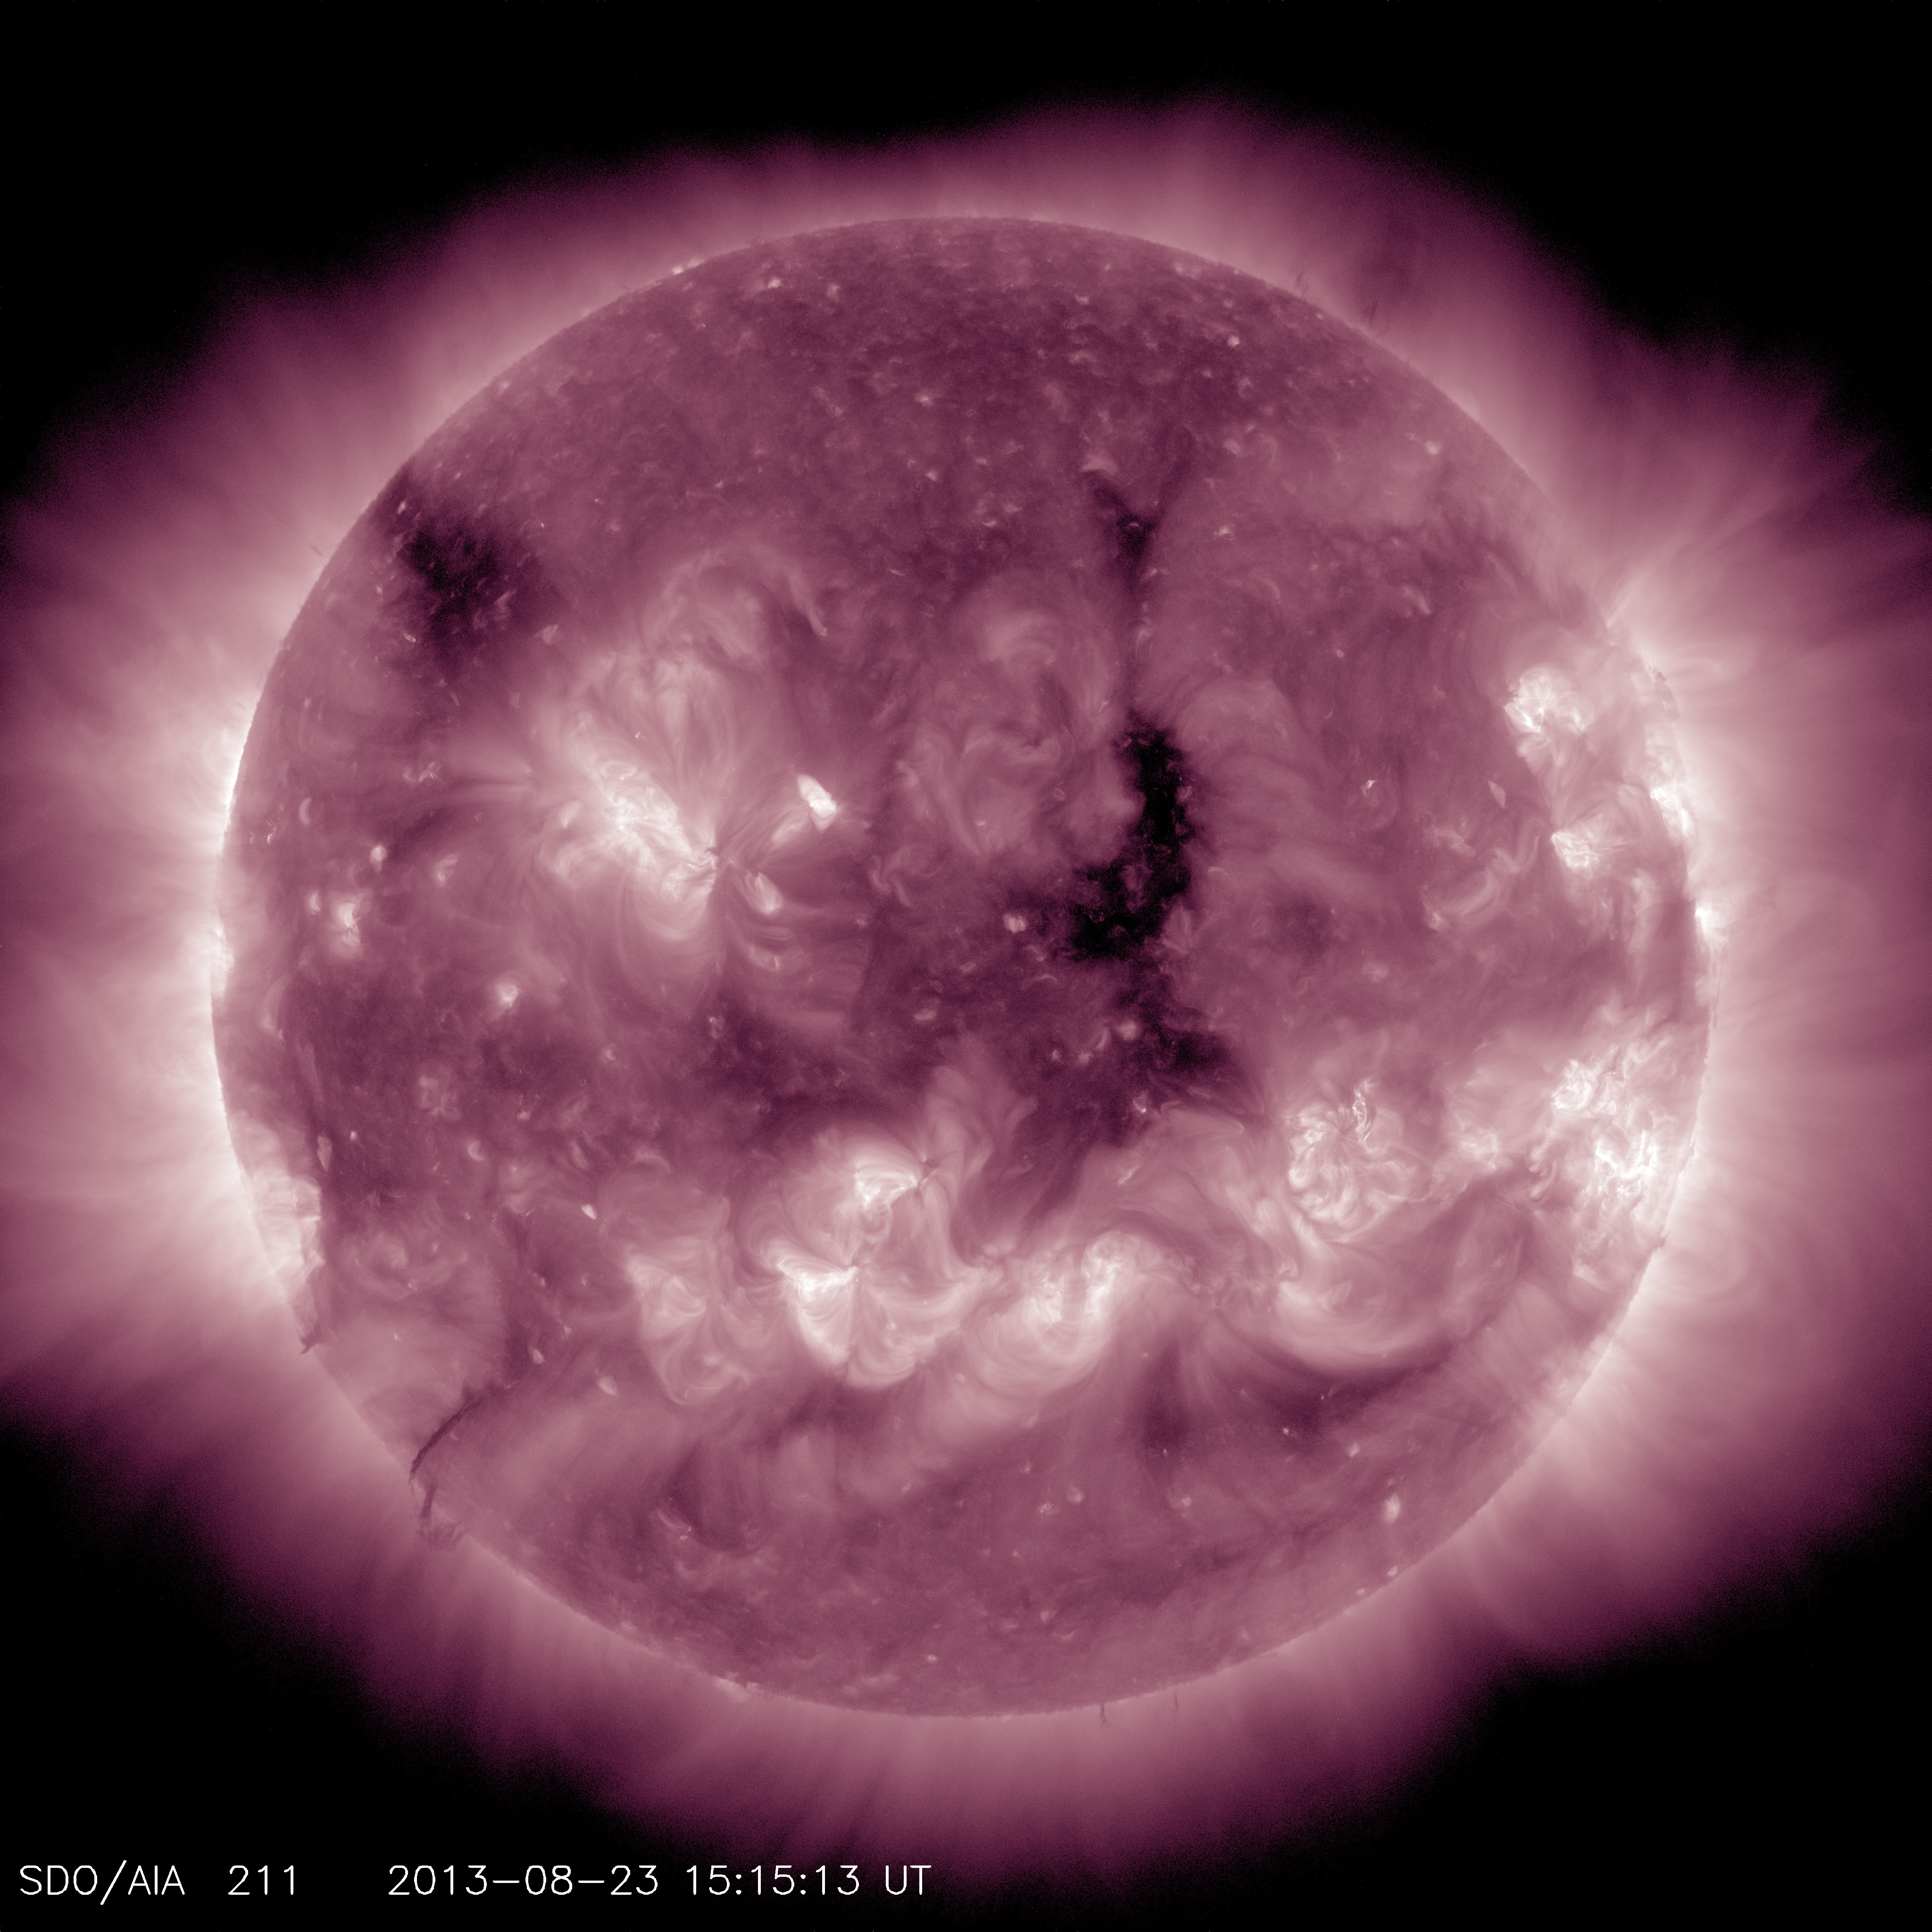 This channel highlights the active region of the outer atmosphere of the sun -- the corona. Active regions, solar flares and coronal mass ejections appear bright here.